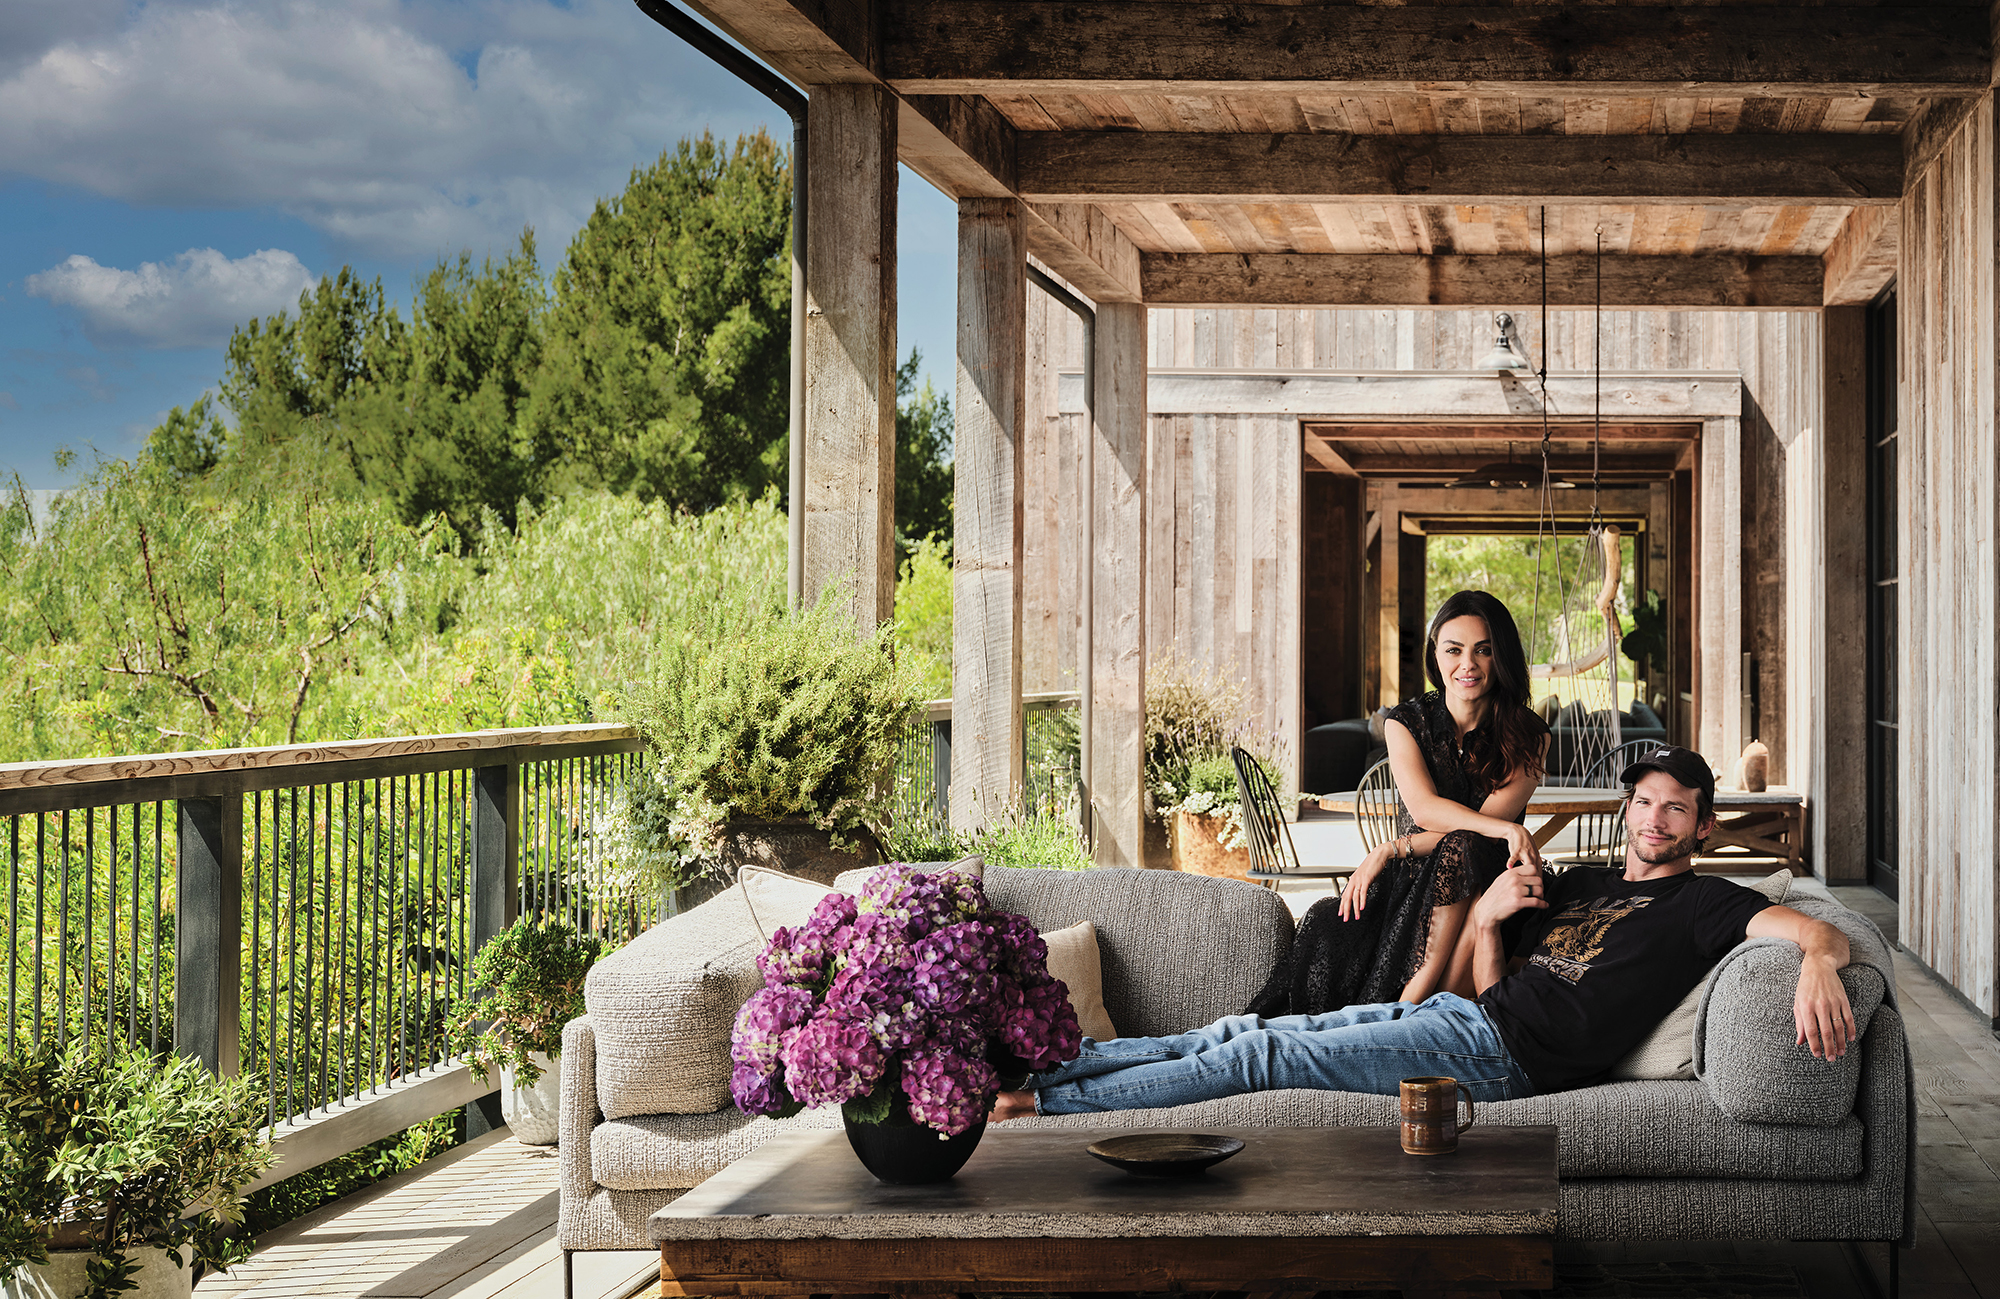 Mila Kunis and Ashton Kutcher for Architectural Digest